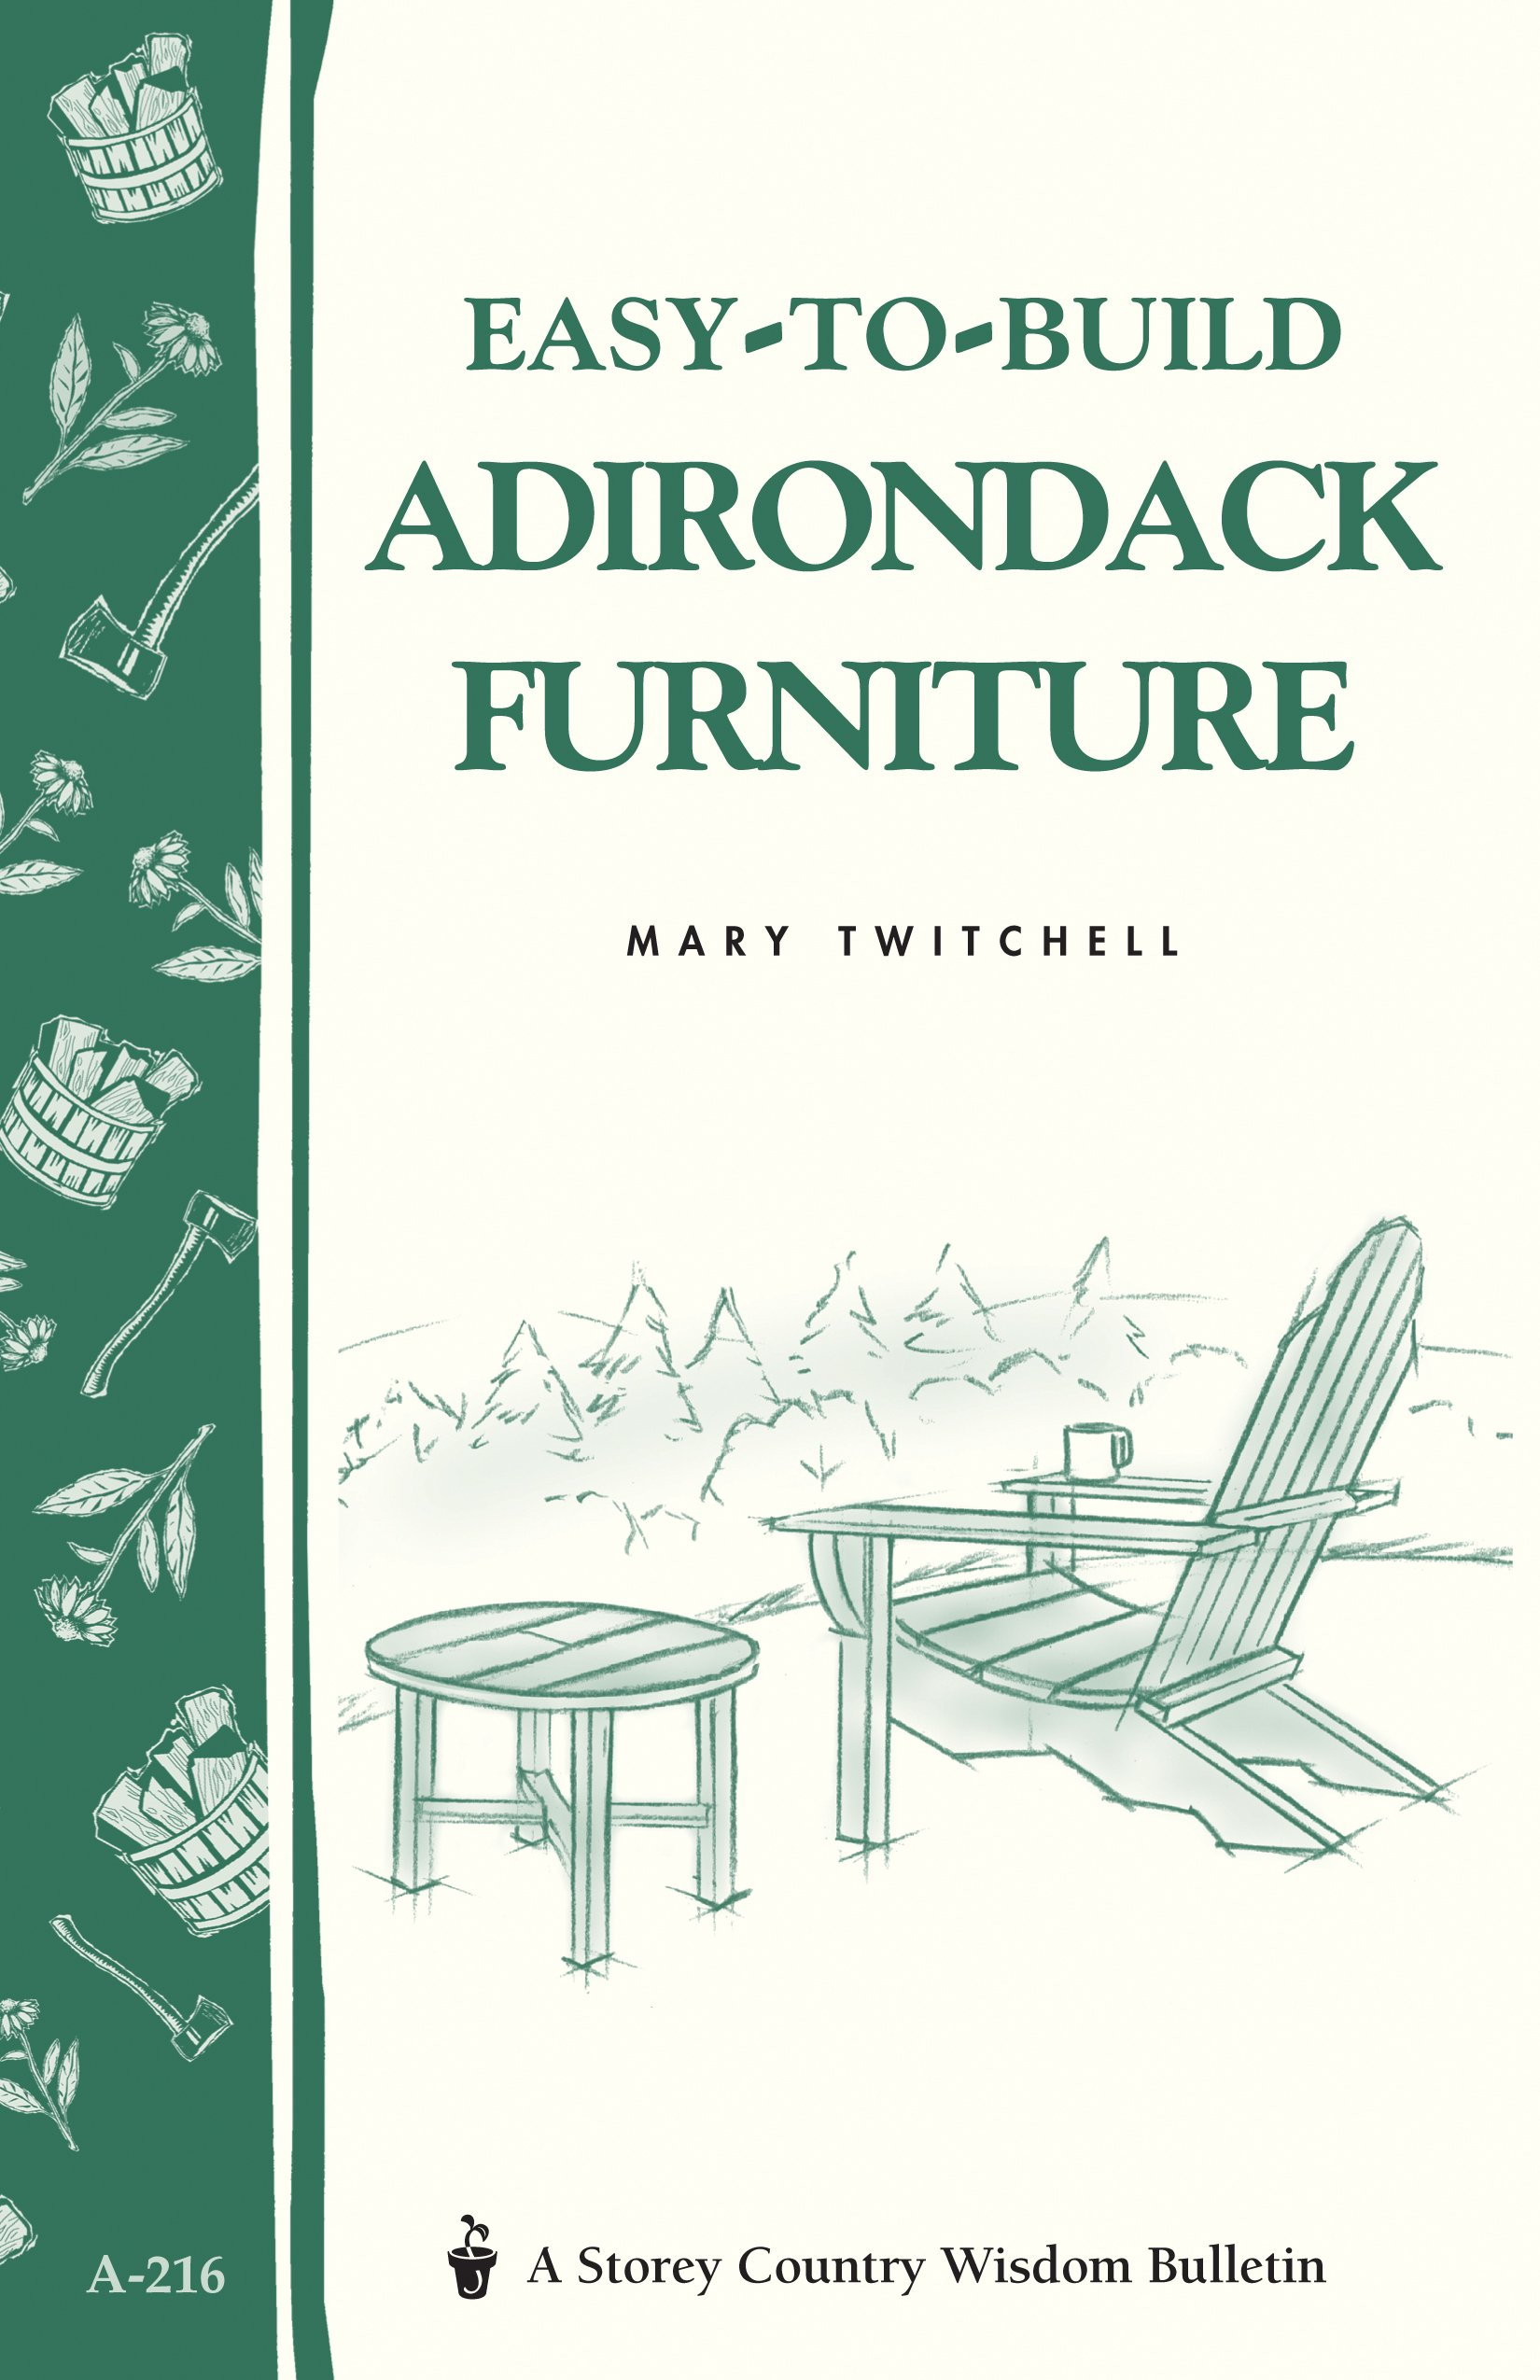 Gut Easy To Build Adirondack Furniture: Amazon.de: Mary Twitchell: Bücher